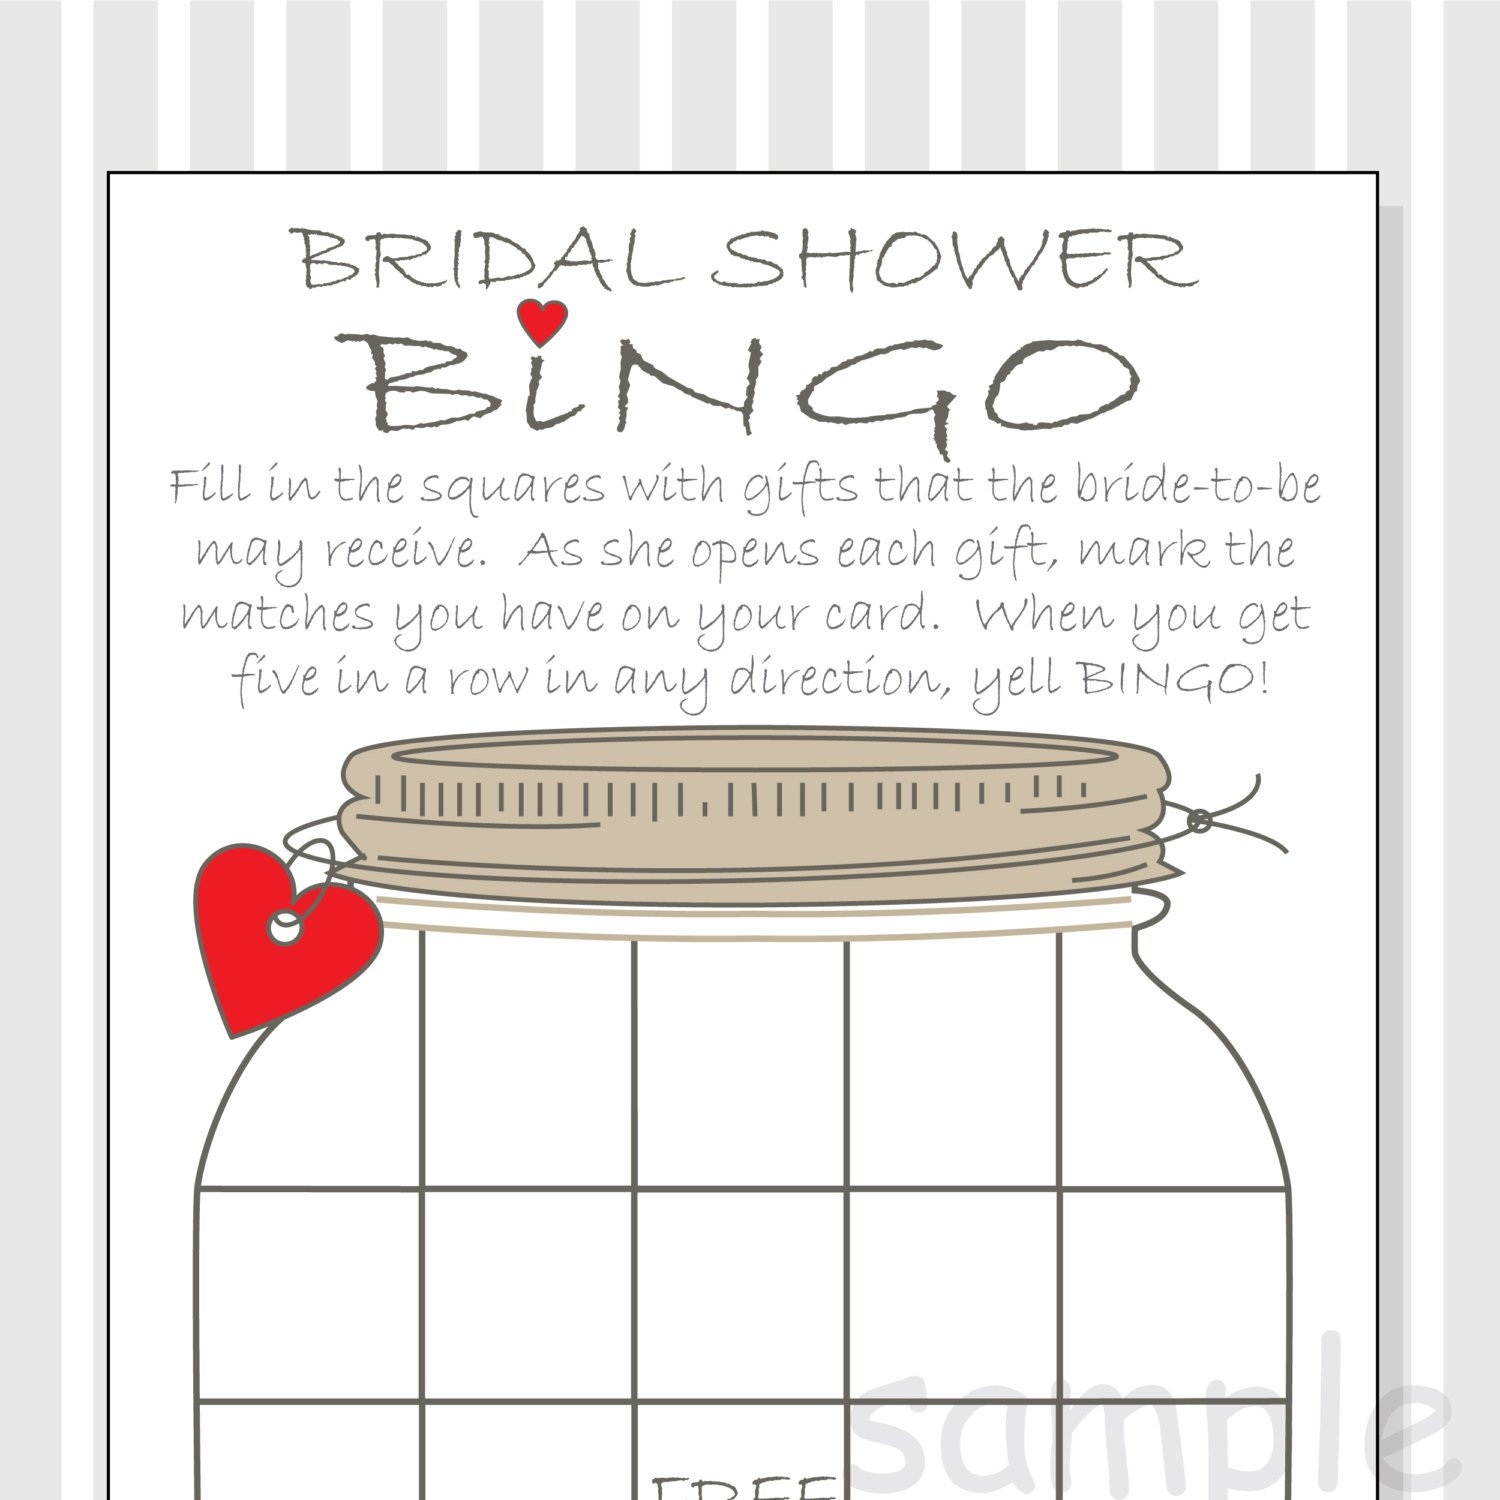 Bridal Shower Bingo Template Bridal Shower Bingo Printable Cards Gift Bingo Rustic